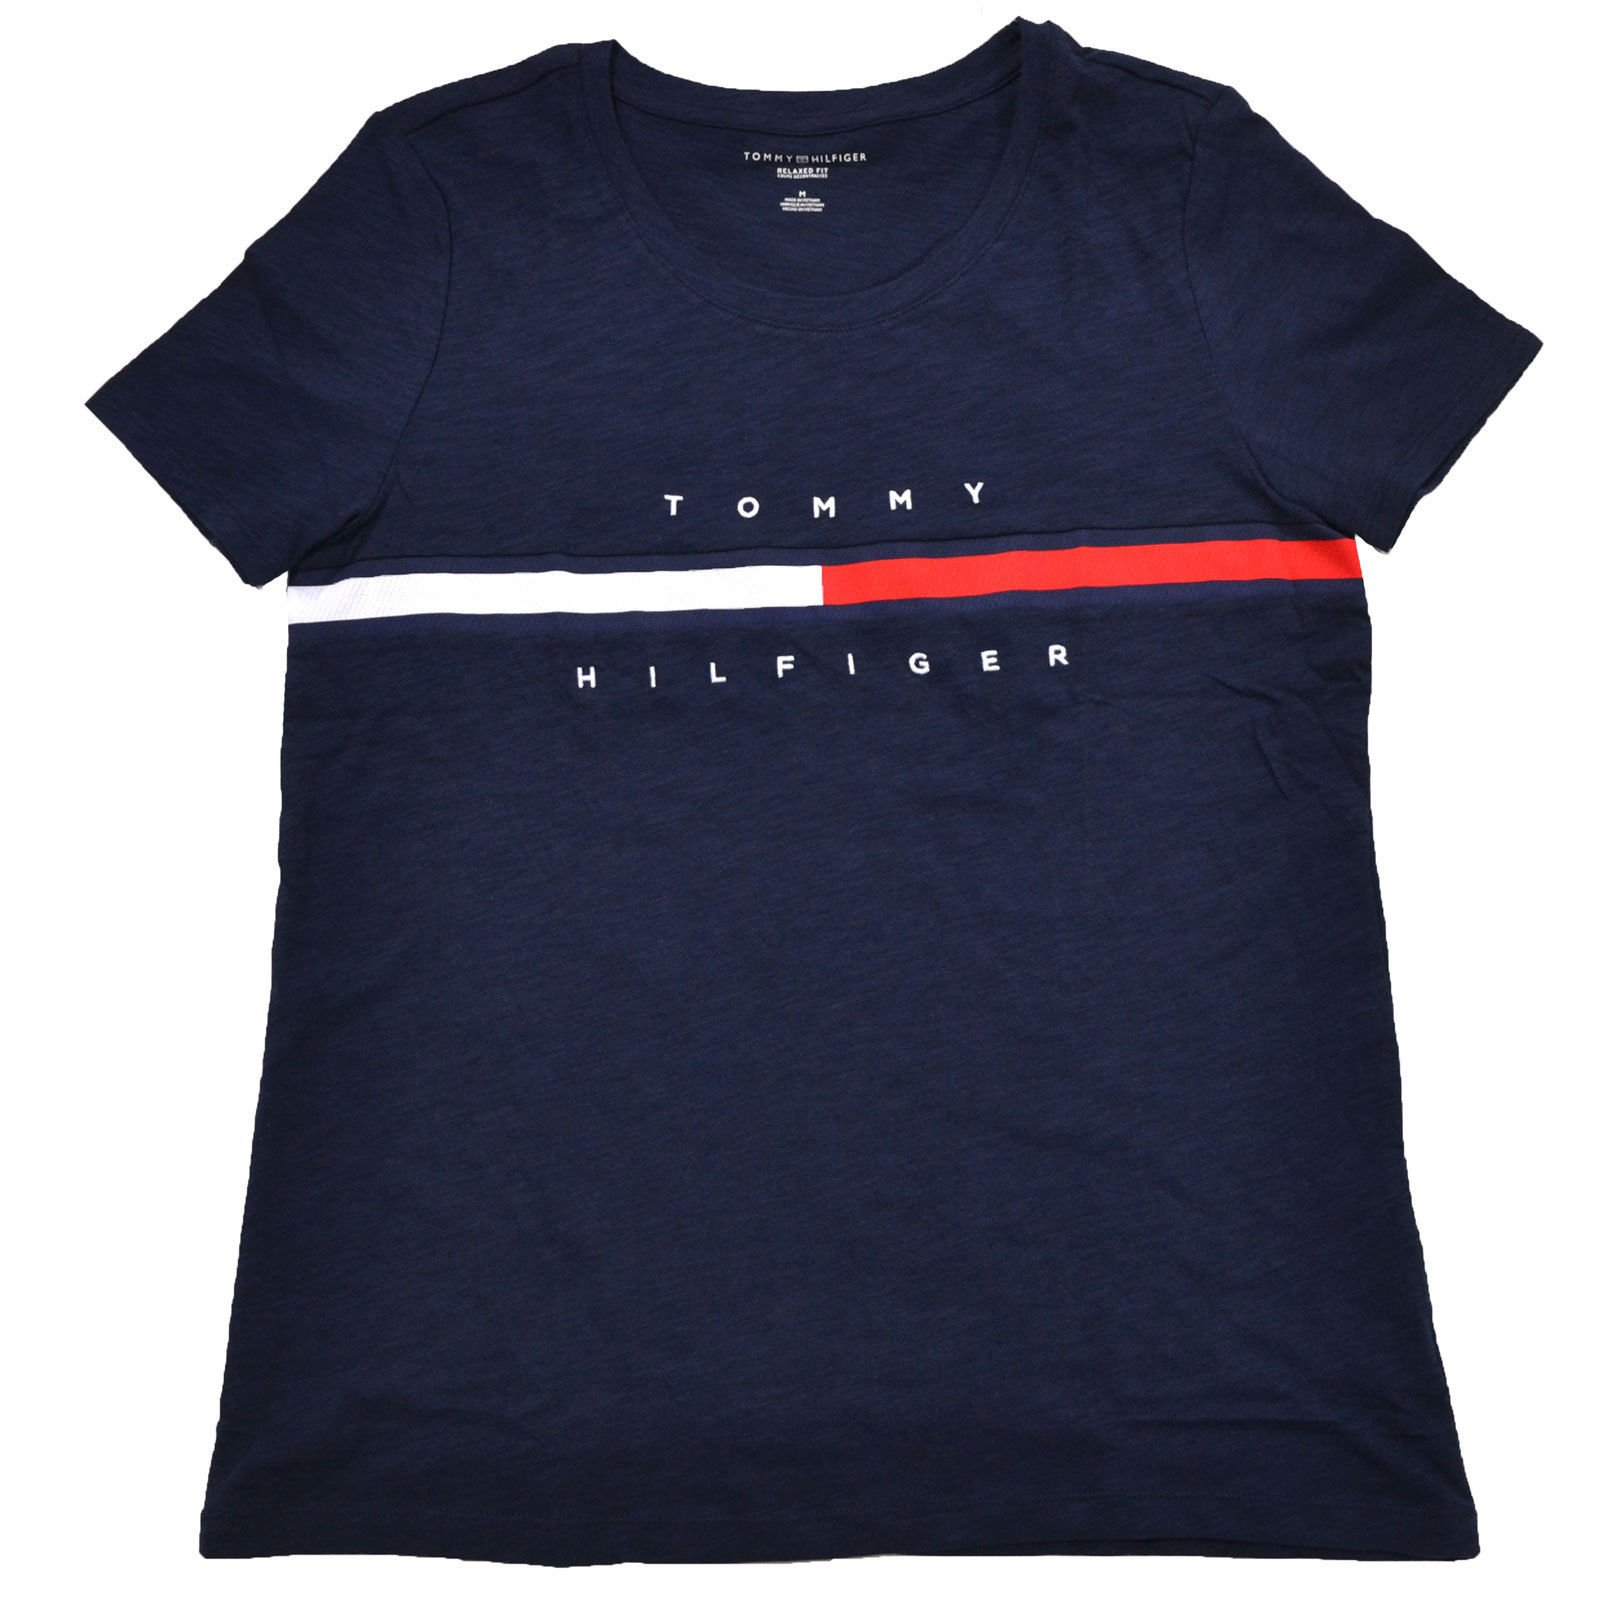 69bfd2bbed Galleon - Tommy Hilfiger Women s Big Logo Line T-Shirt (L